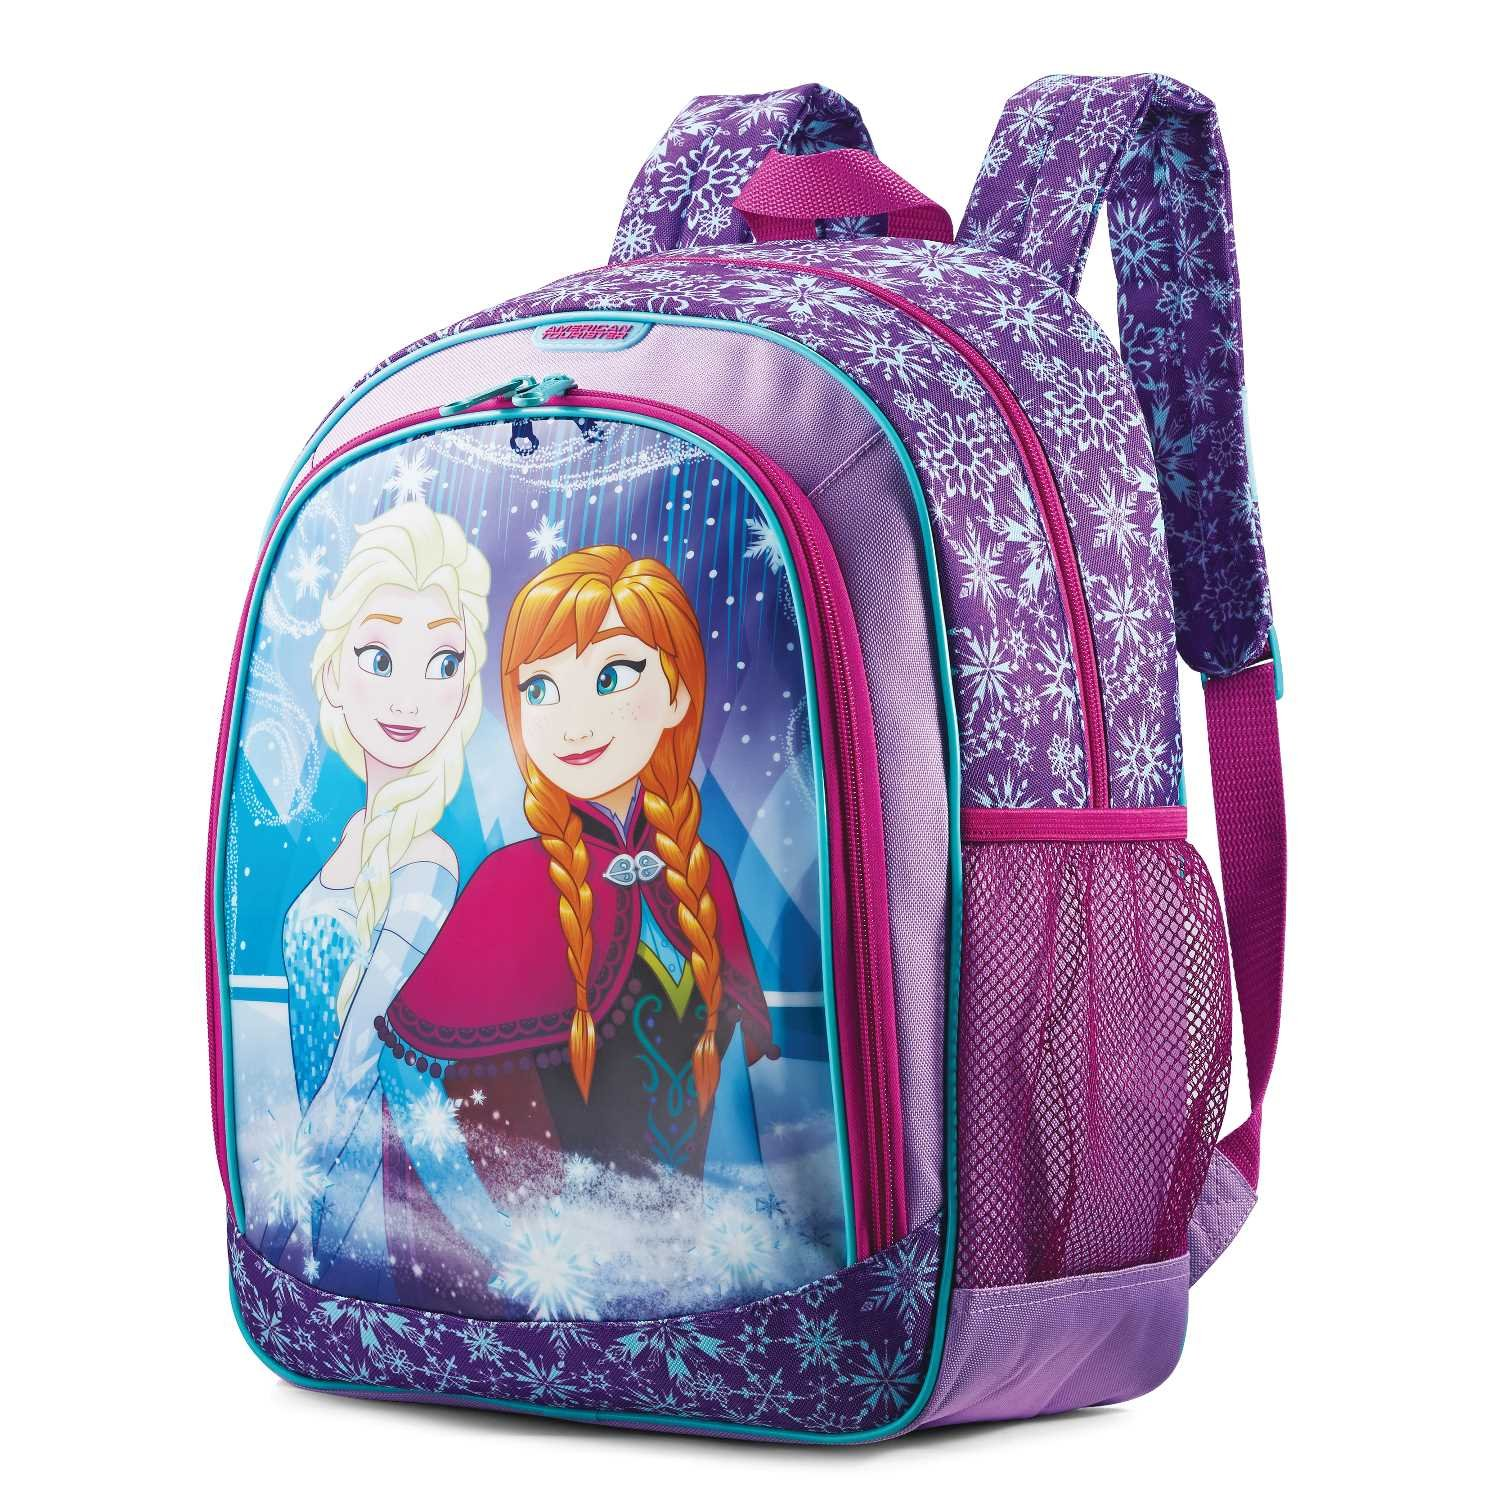 American Tourister Kids' Disney Children's Backpack, Frozen, One Size by American Tourister